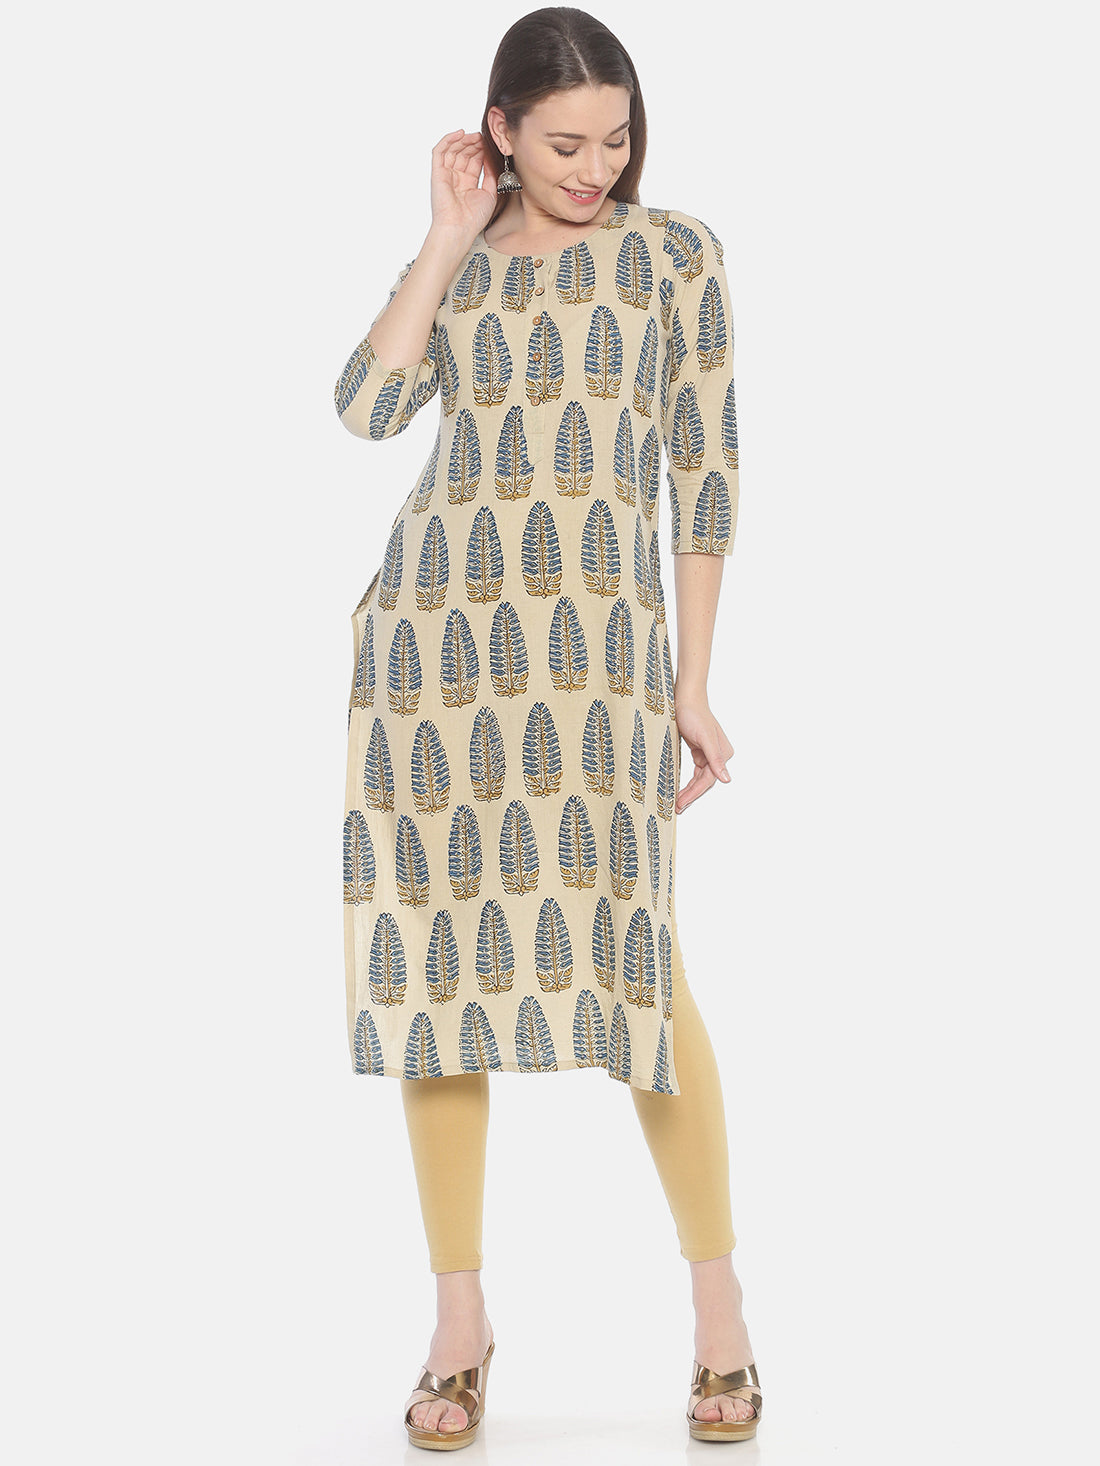 Beige Ajrakh Hand Block Printed Naturally Dyed Pure Cotton Kurti